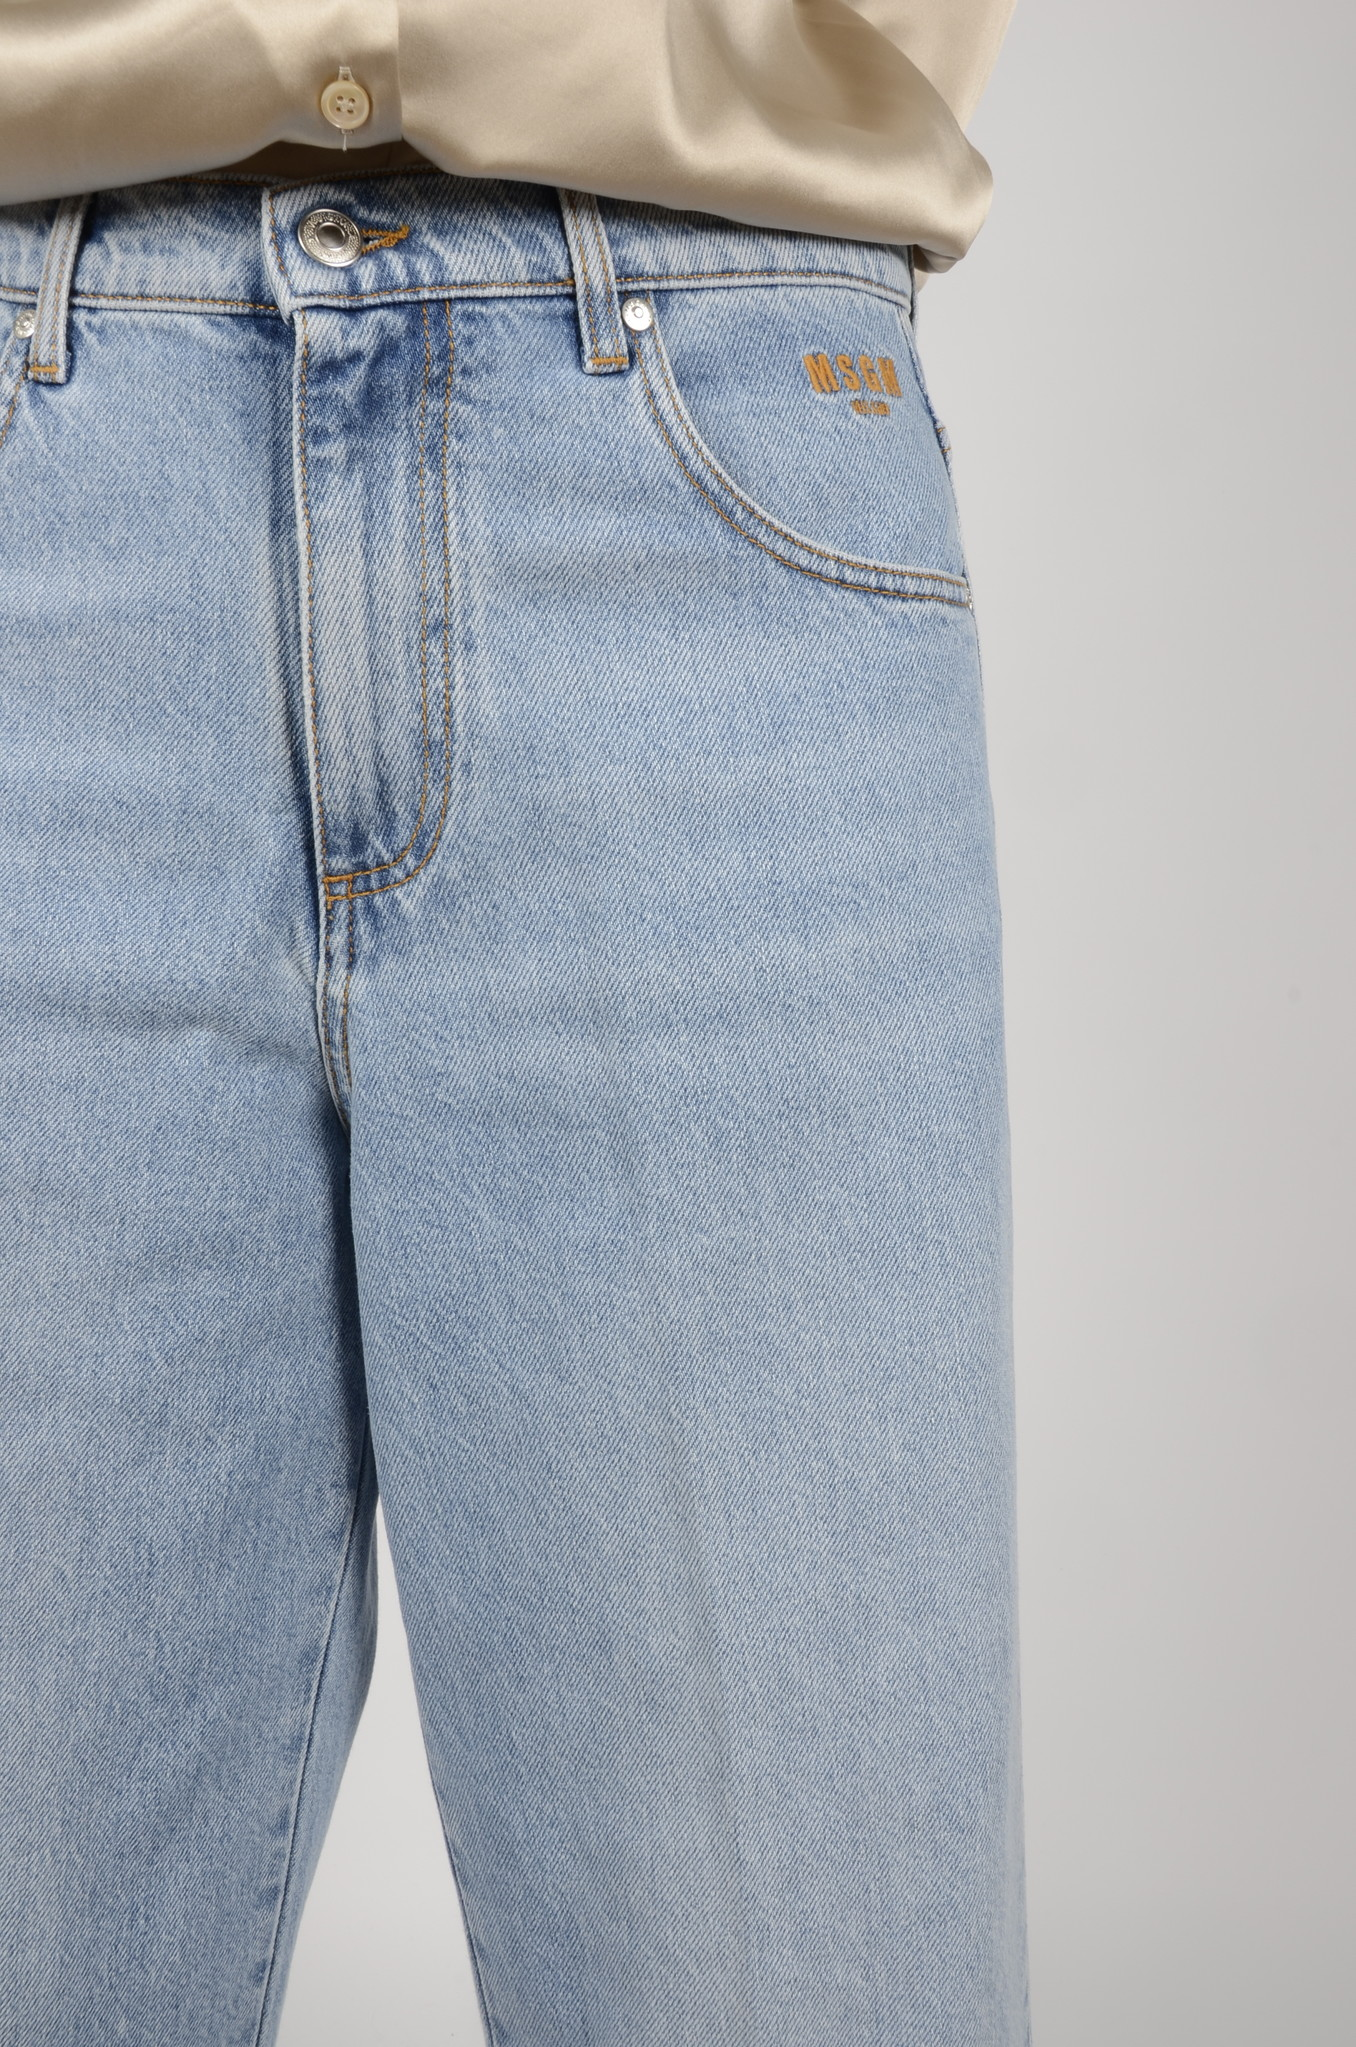 HIGH RISE CROPPED JEANS-5